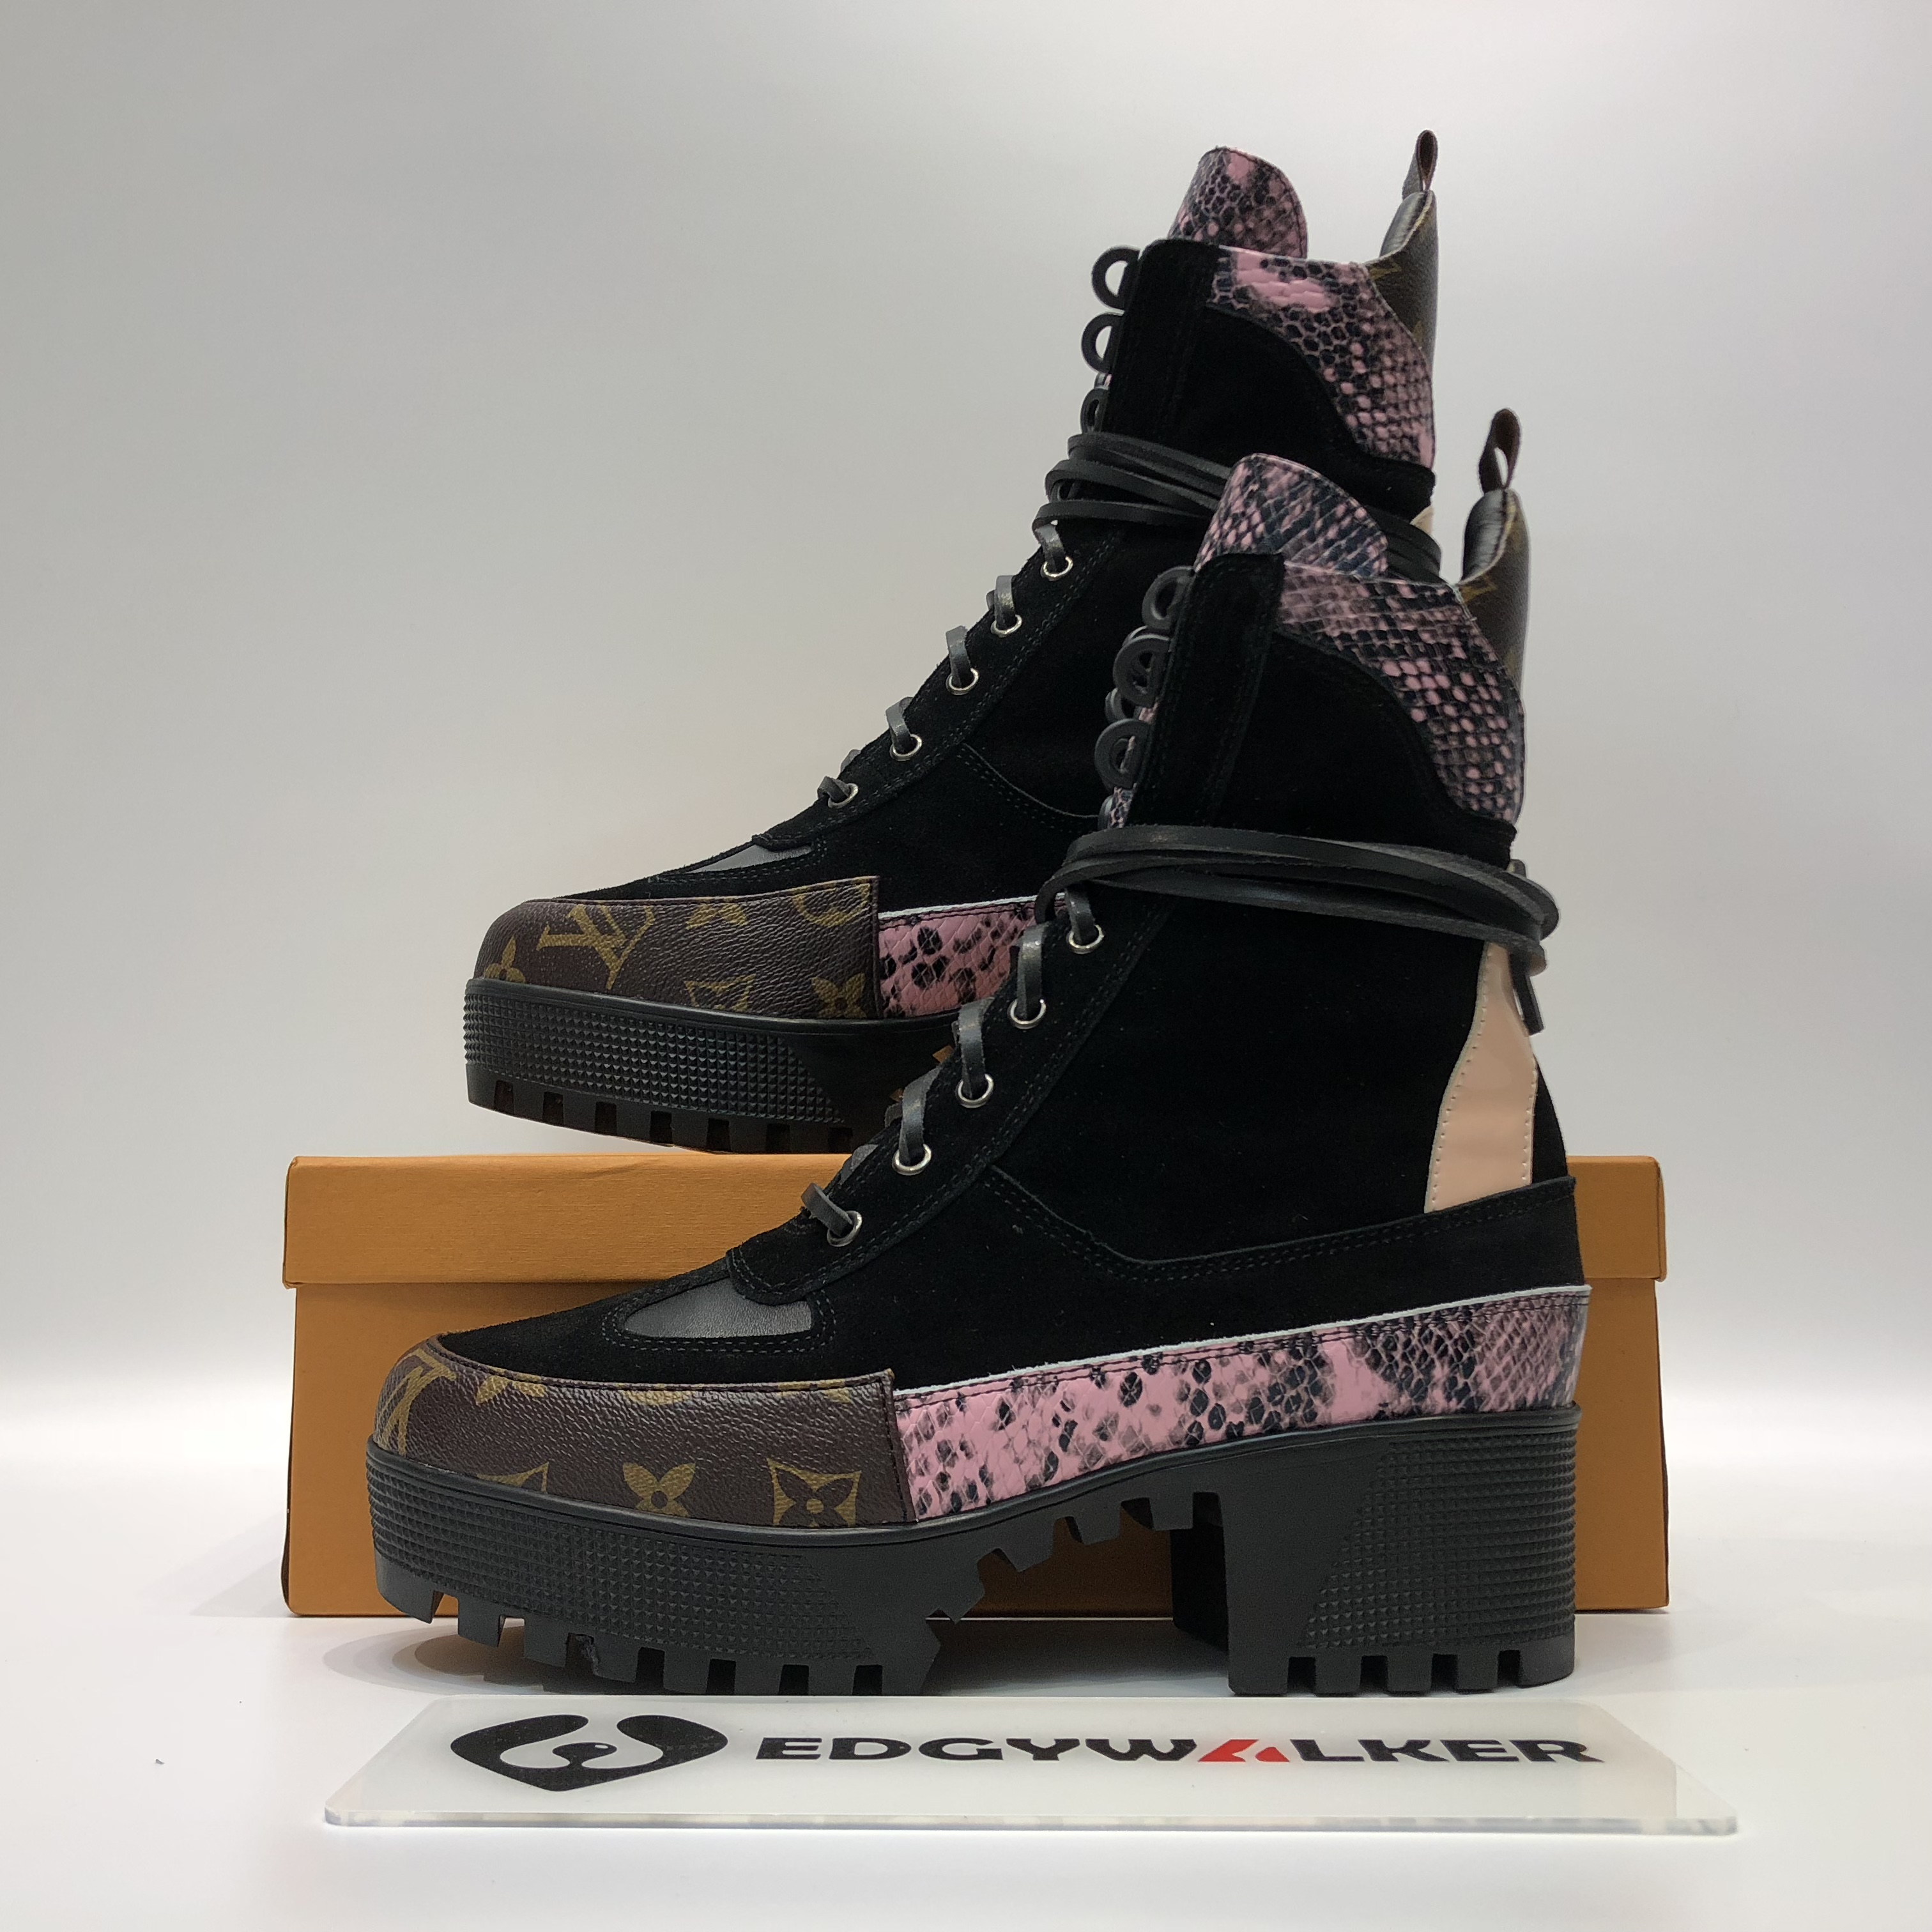 f2dc27a5e18a US  150 - LVBOT27 LV LIMITLESS ANKLE BOOT - www.edgywalker.net